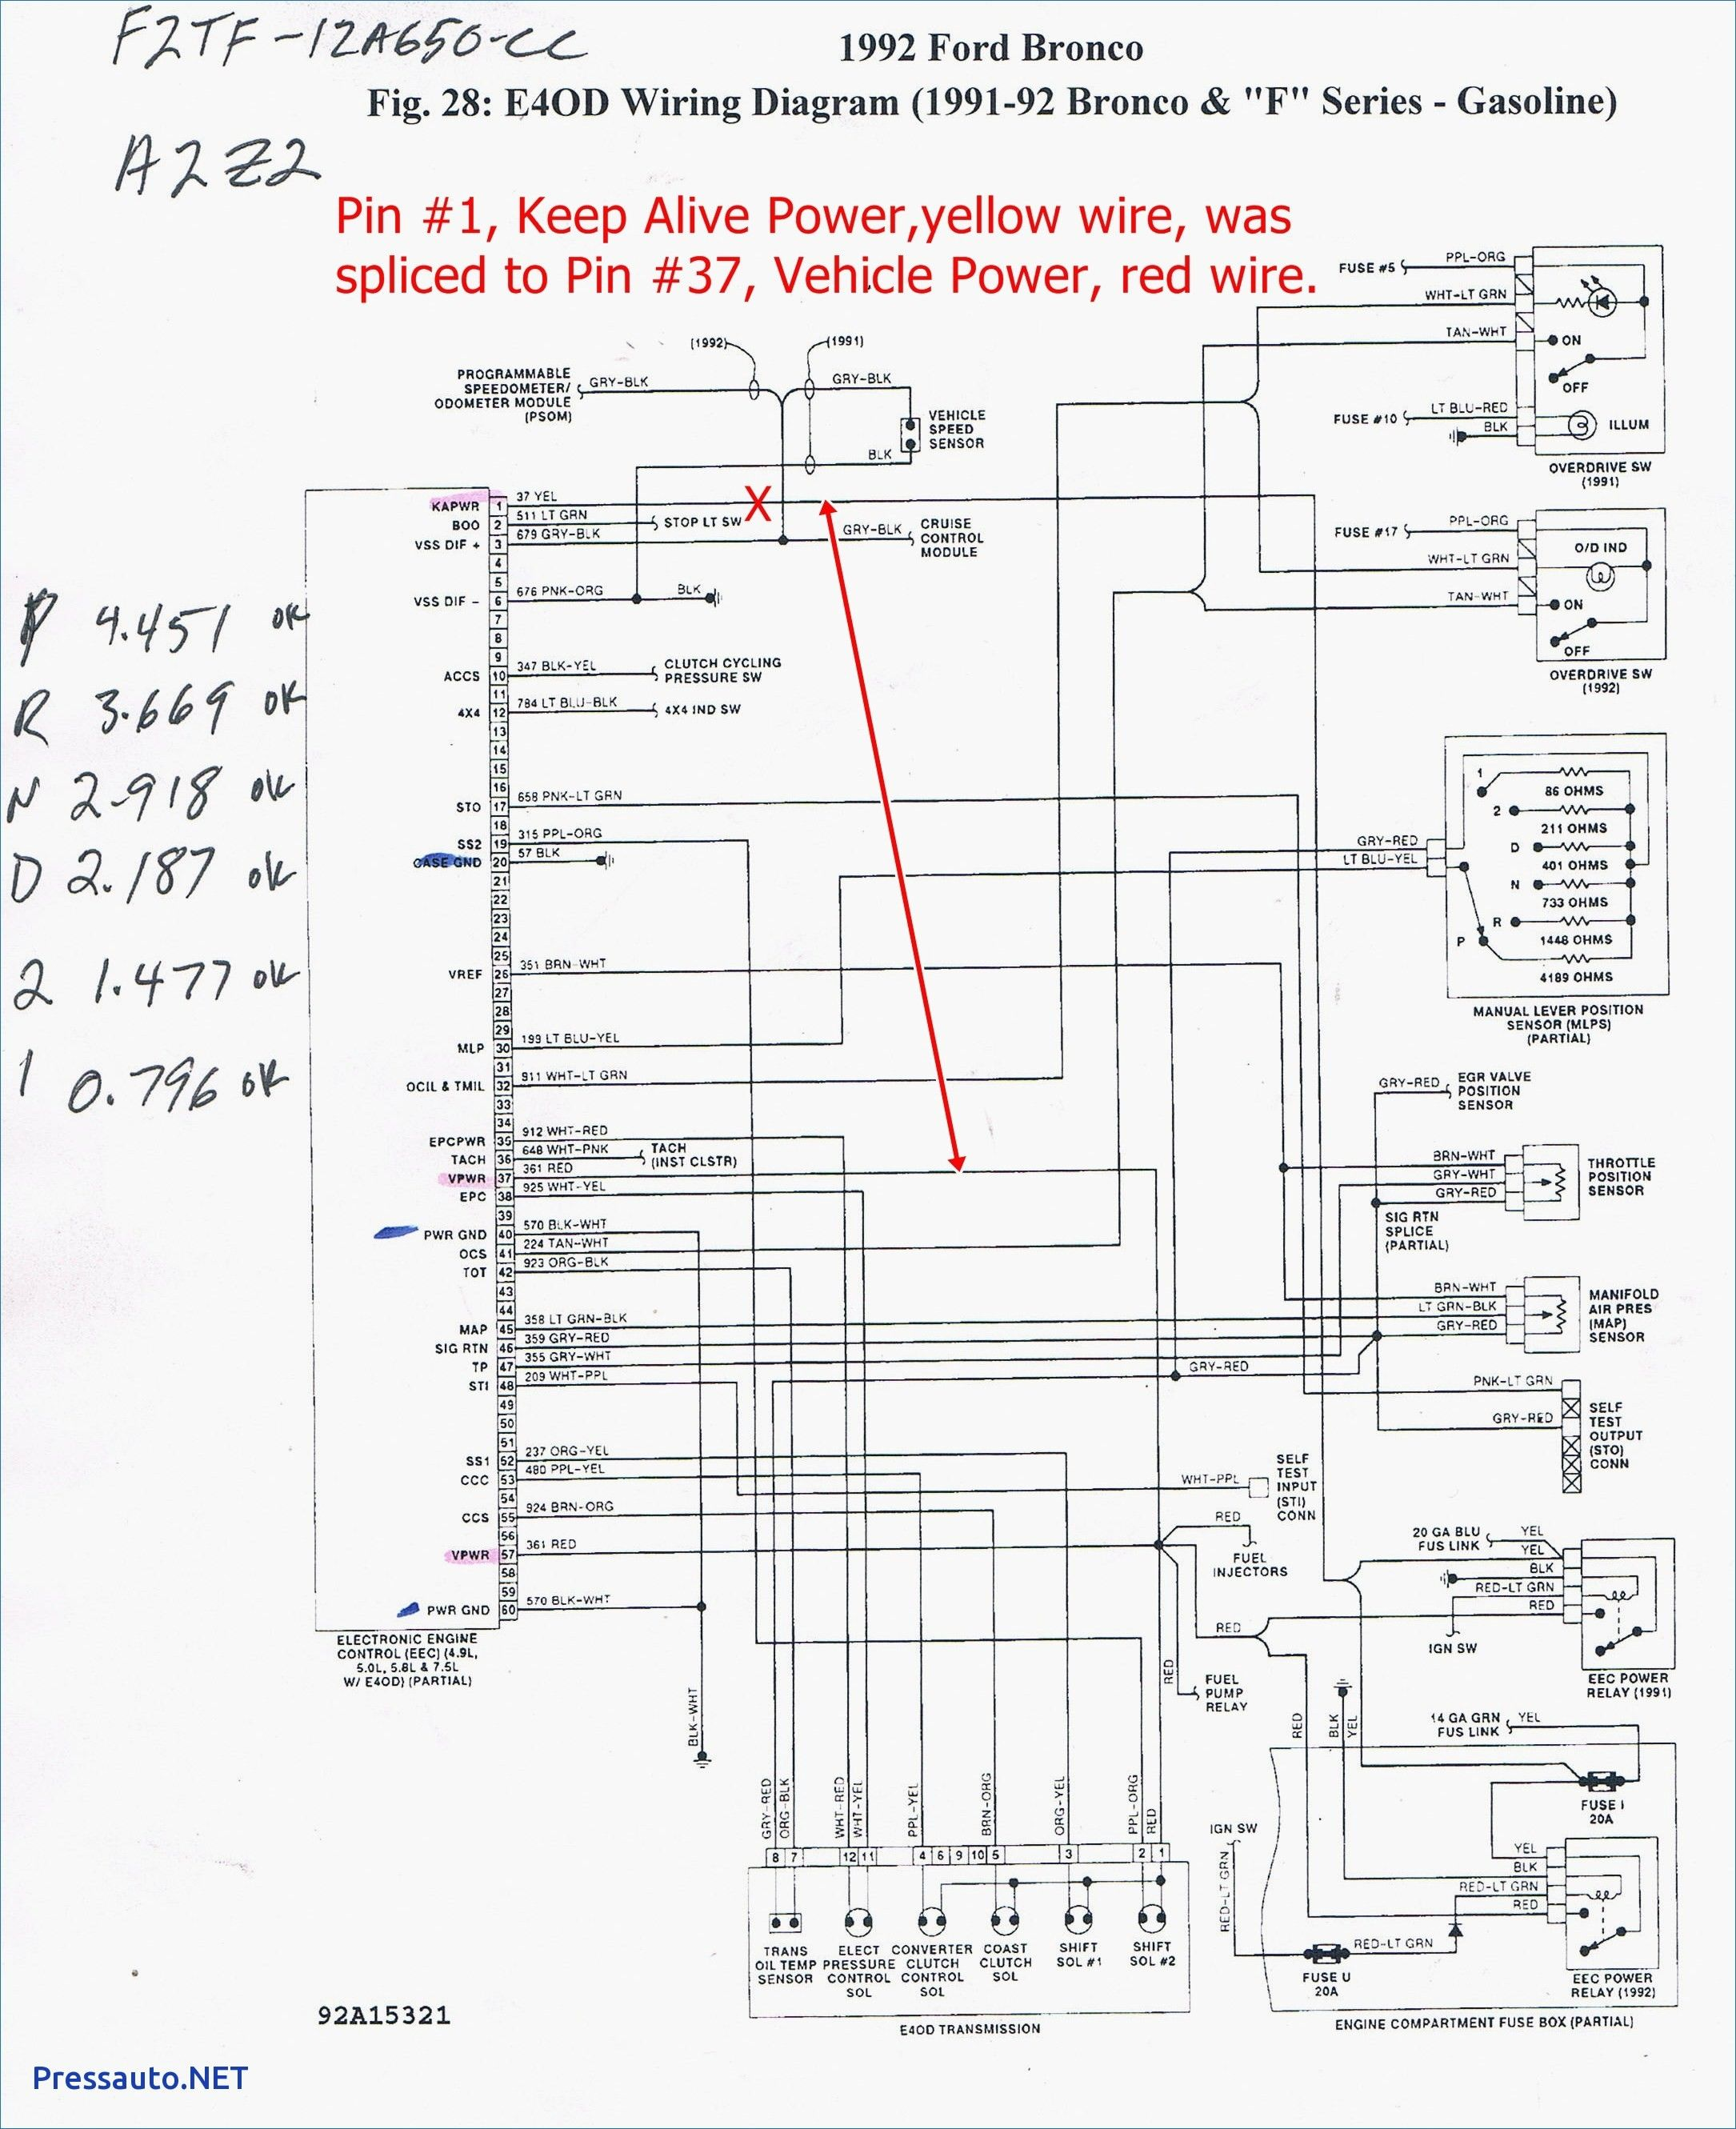 ford explorer engine diagram in 2021 | dodge ram, dodge ram 1500, 2004  dodge ram 1500  pinterest